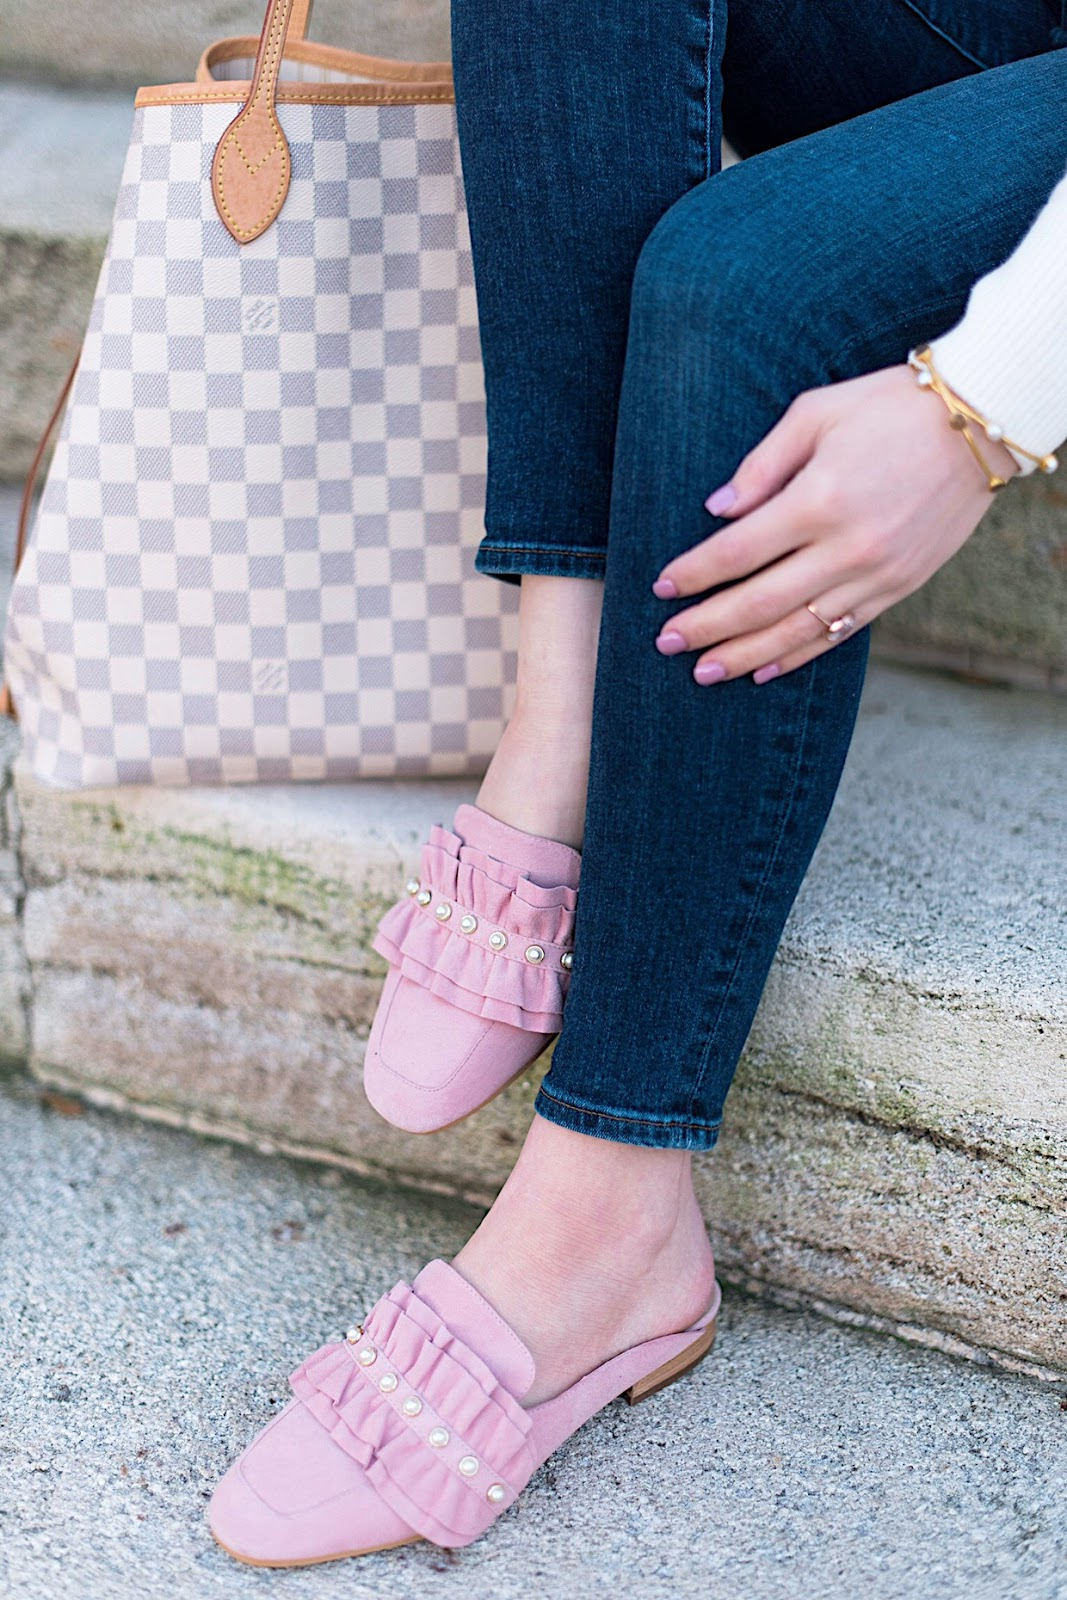 Pearl and Ruffle Mules (Under $70) + Louis Vuitton Neverfull - Something Delightful Blog